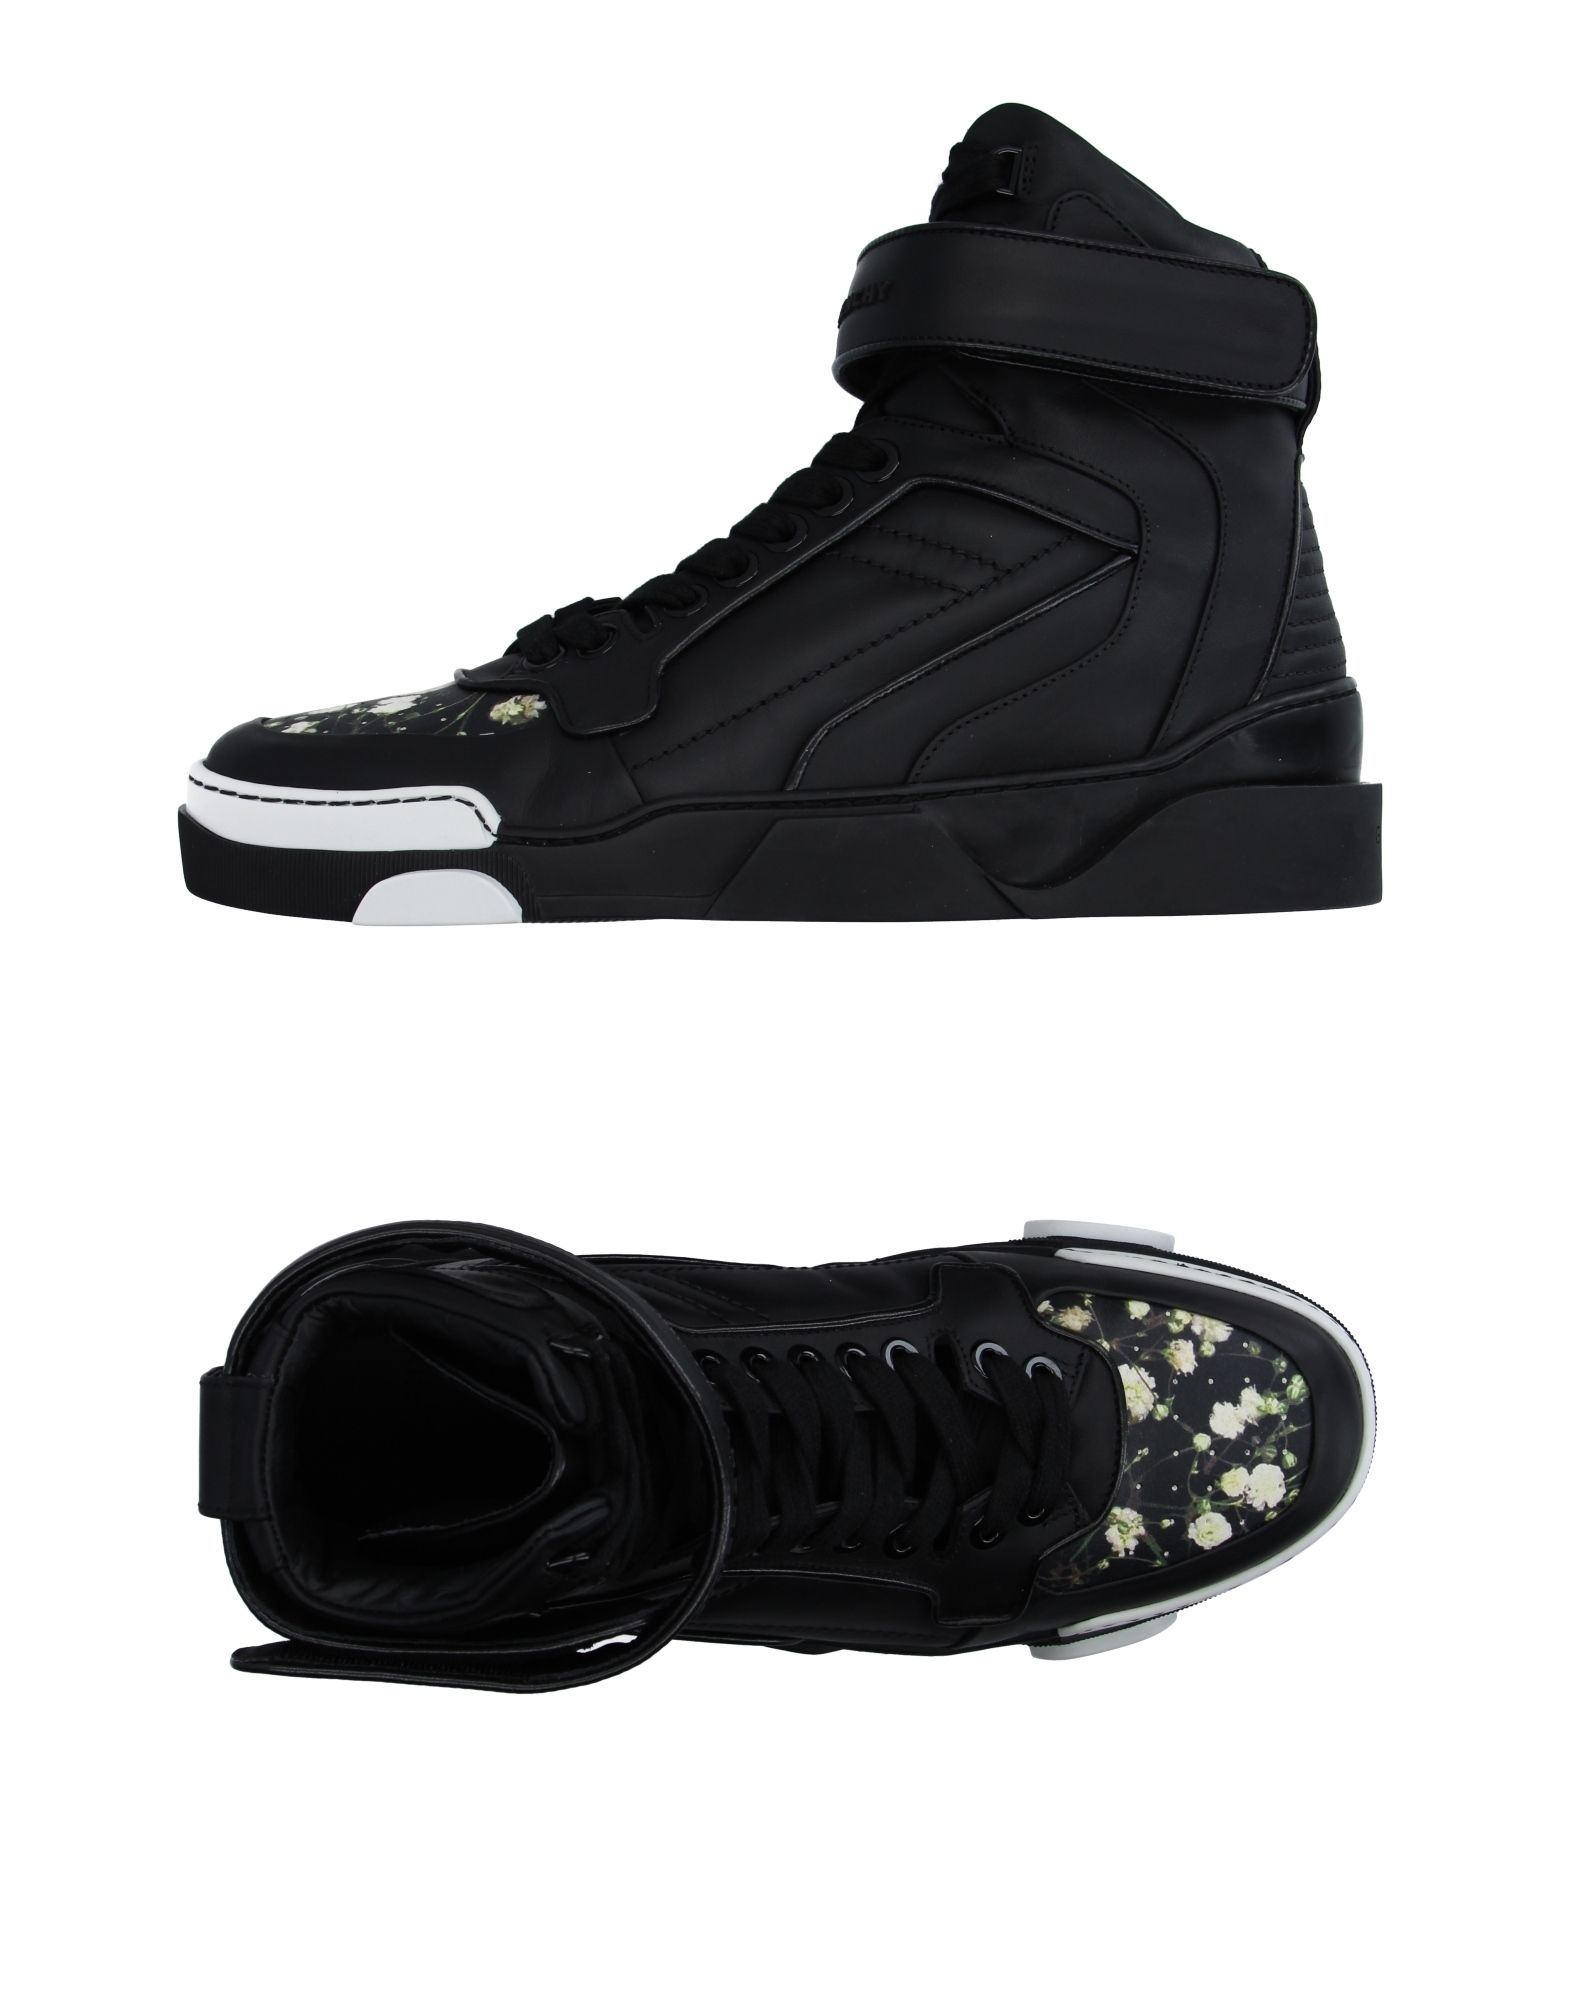 Sneakers Givenchy Homme - Sneakers Givenchy  Noir Remise de marque